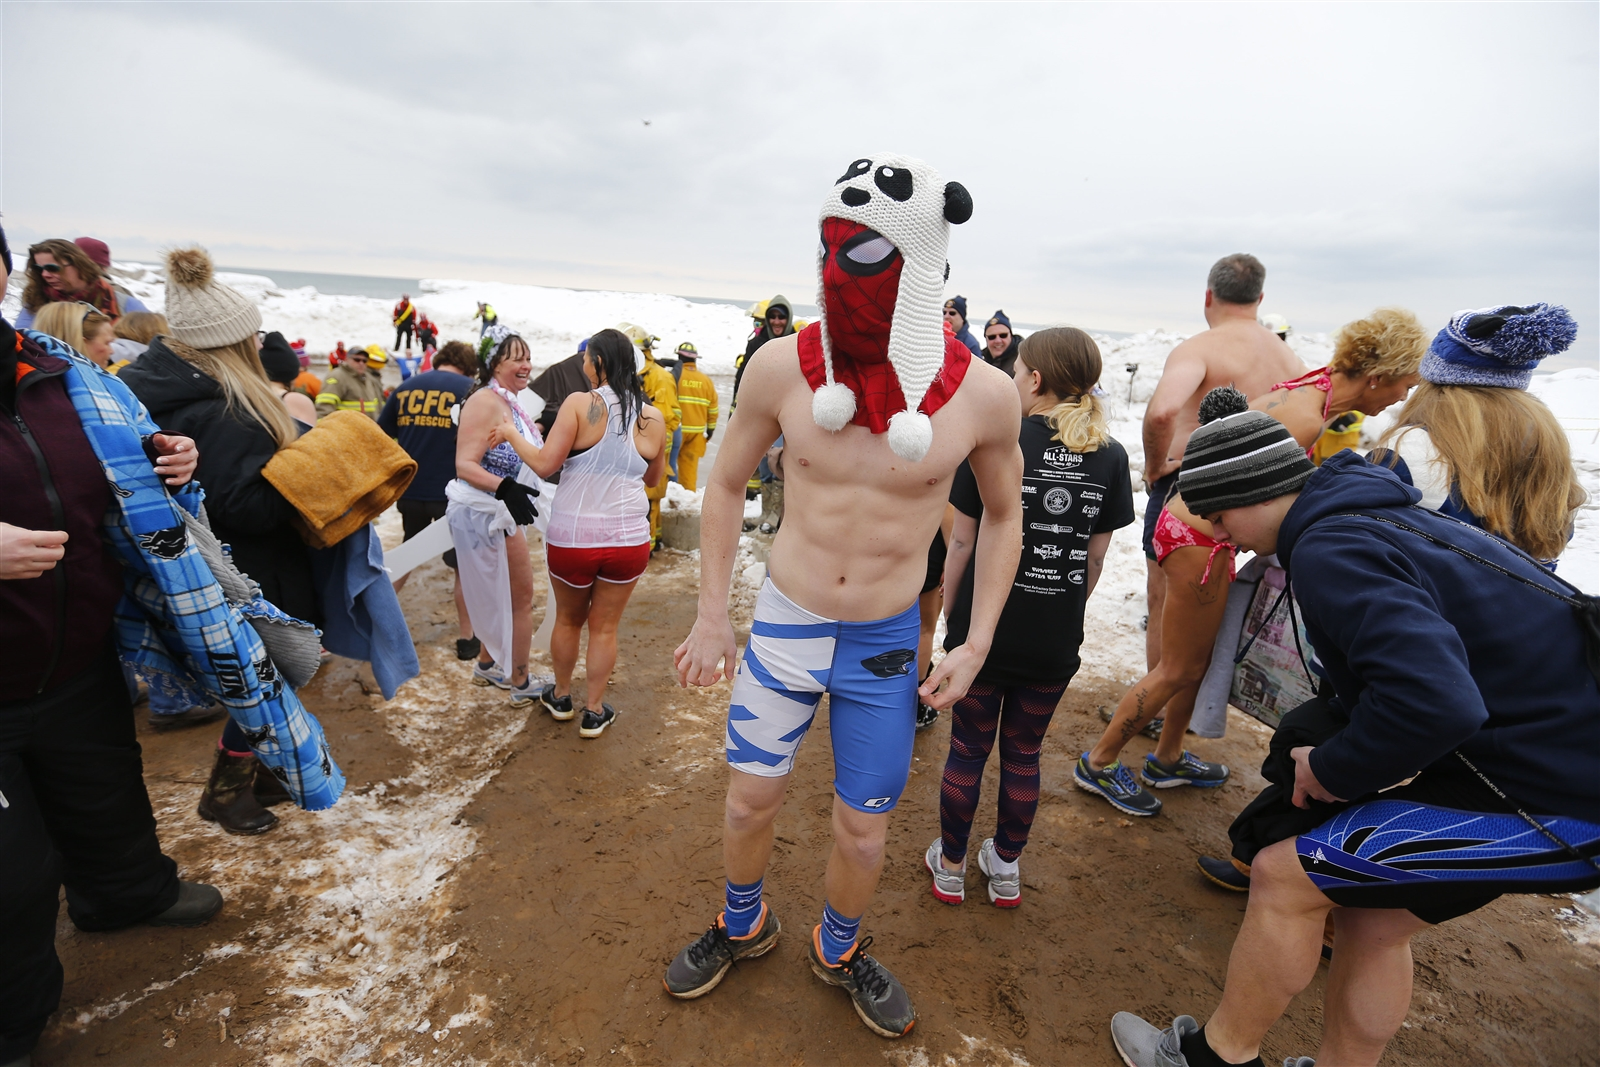 26811a01ca Hundreds brave icy waters for 50th Polar Bear Swim – The Buffalo News